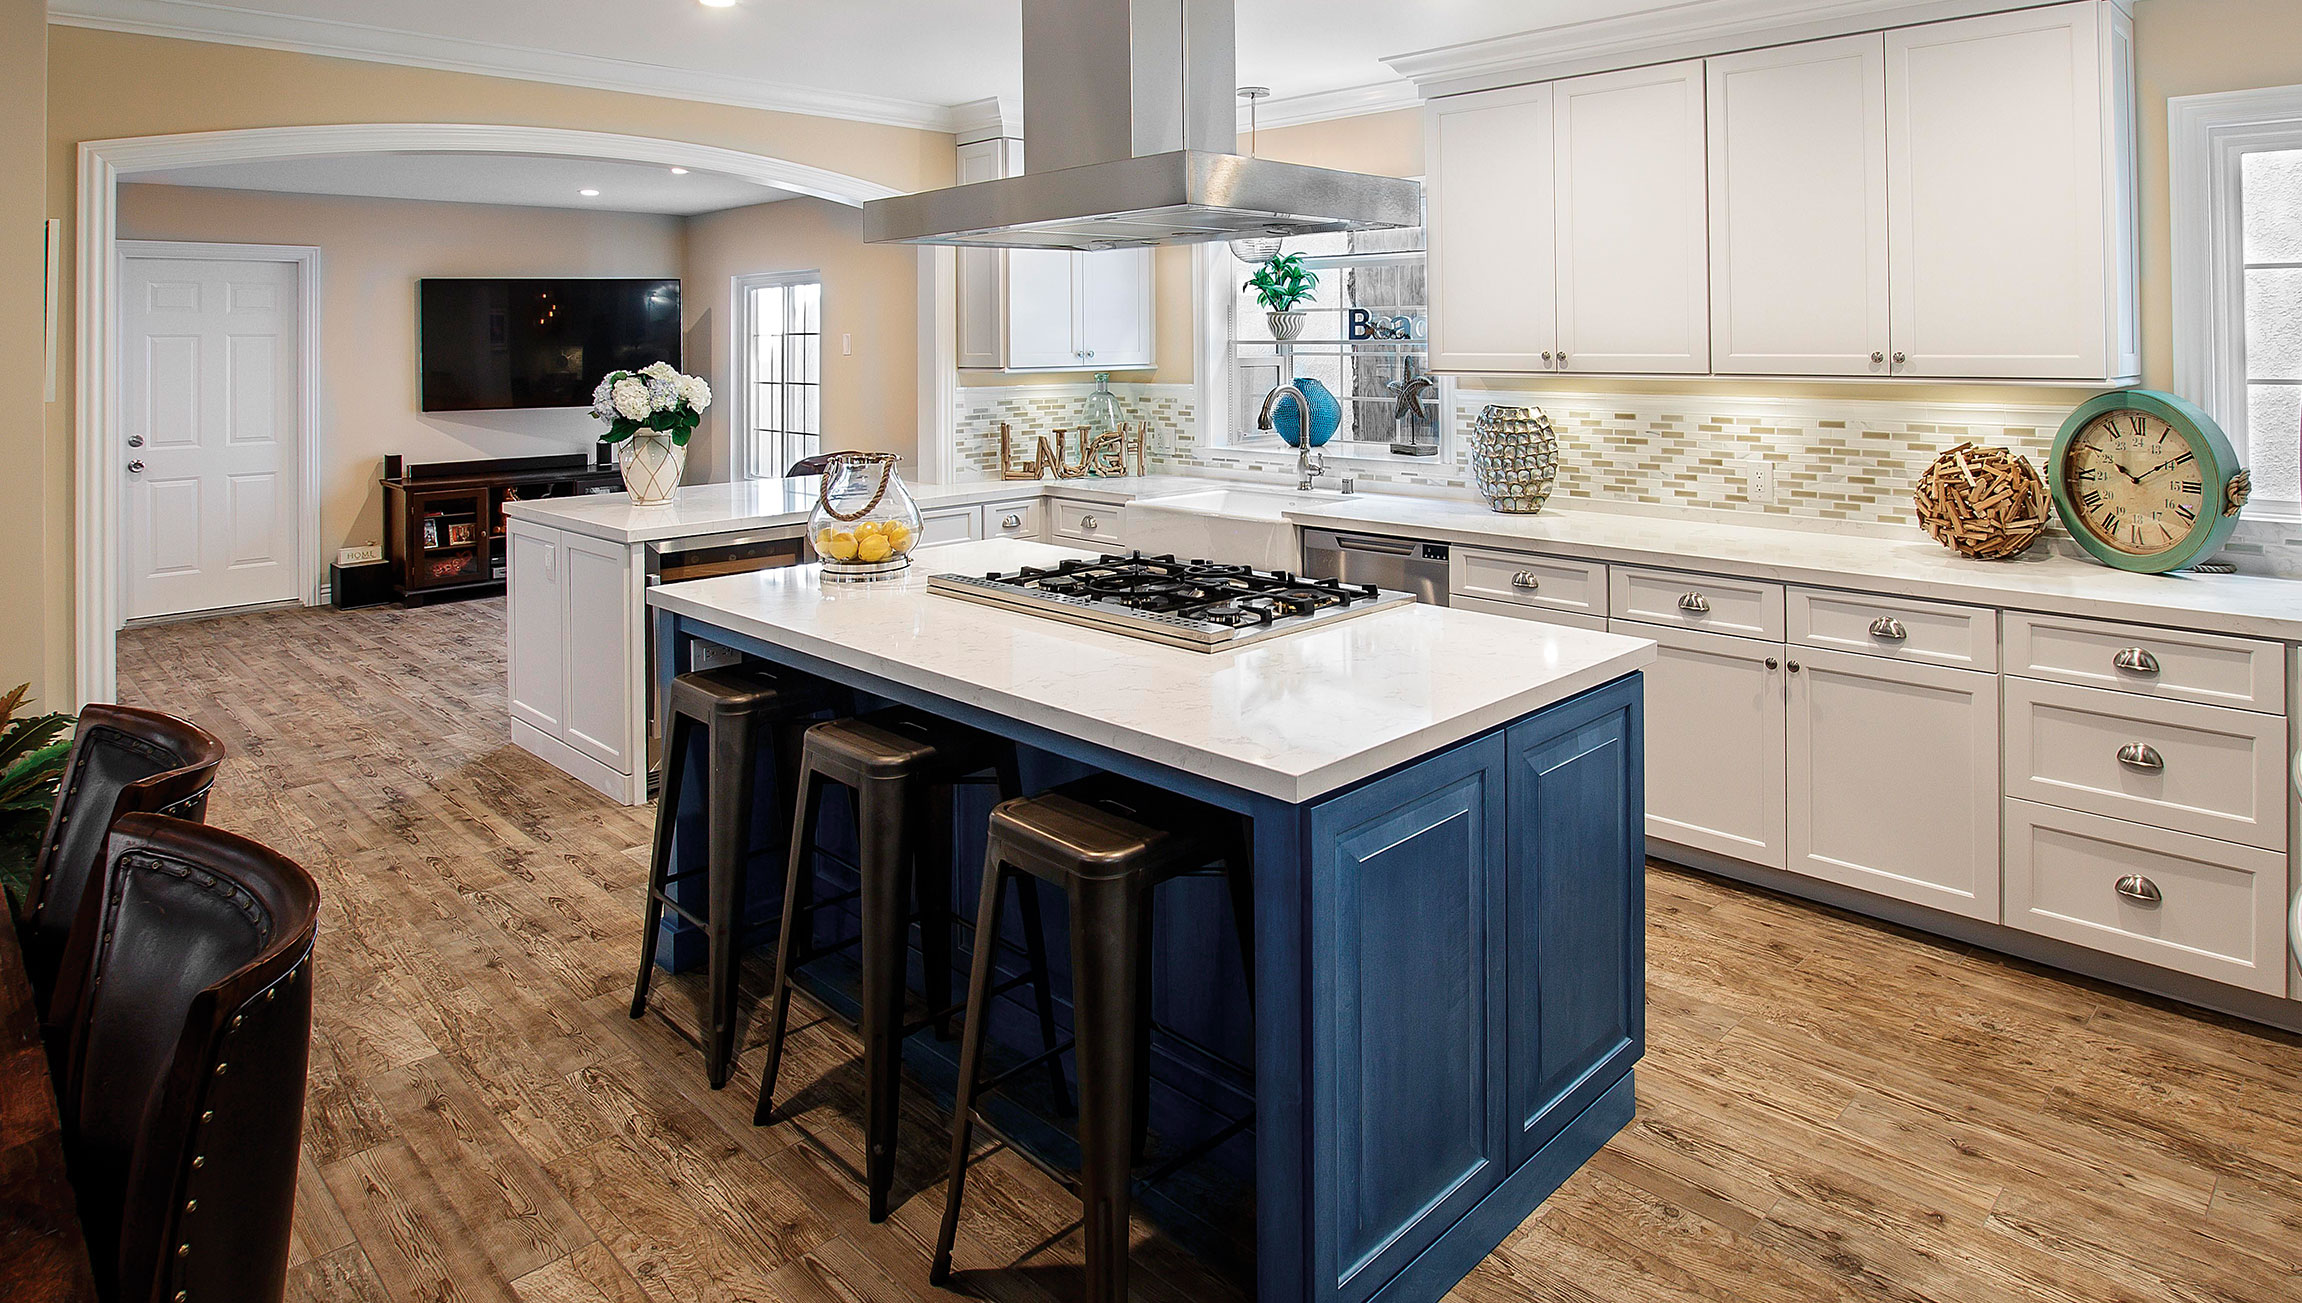 Kitchen Island Cabinets in Blue